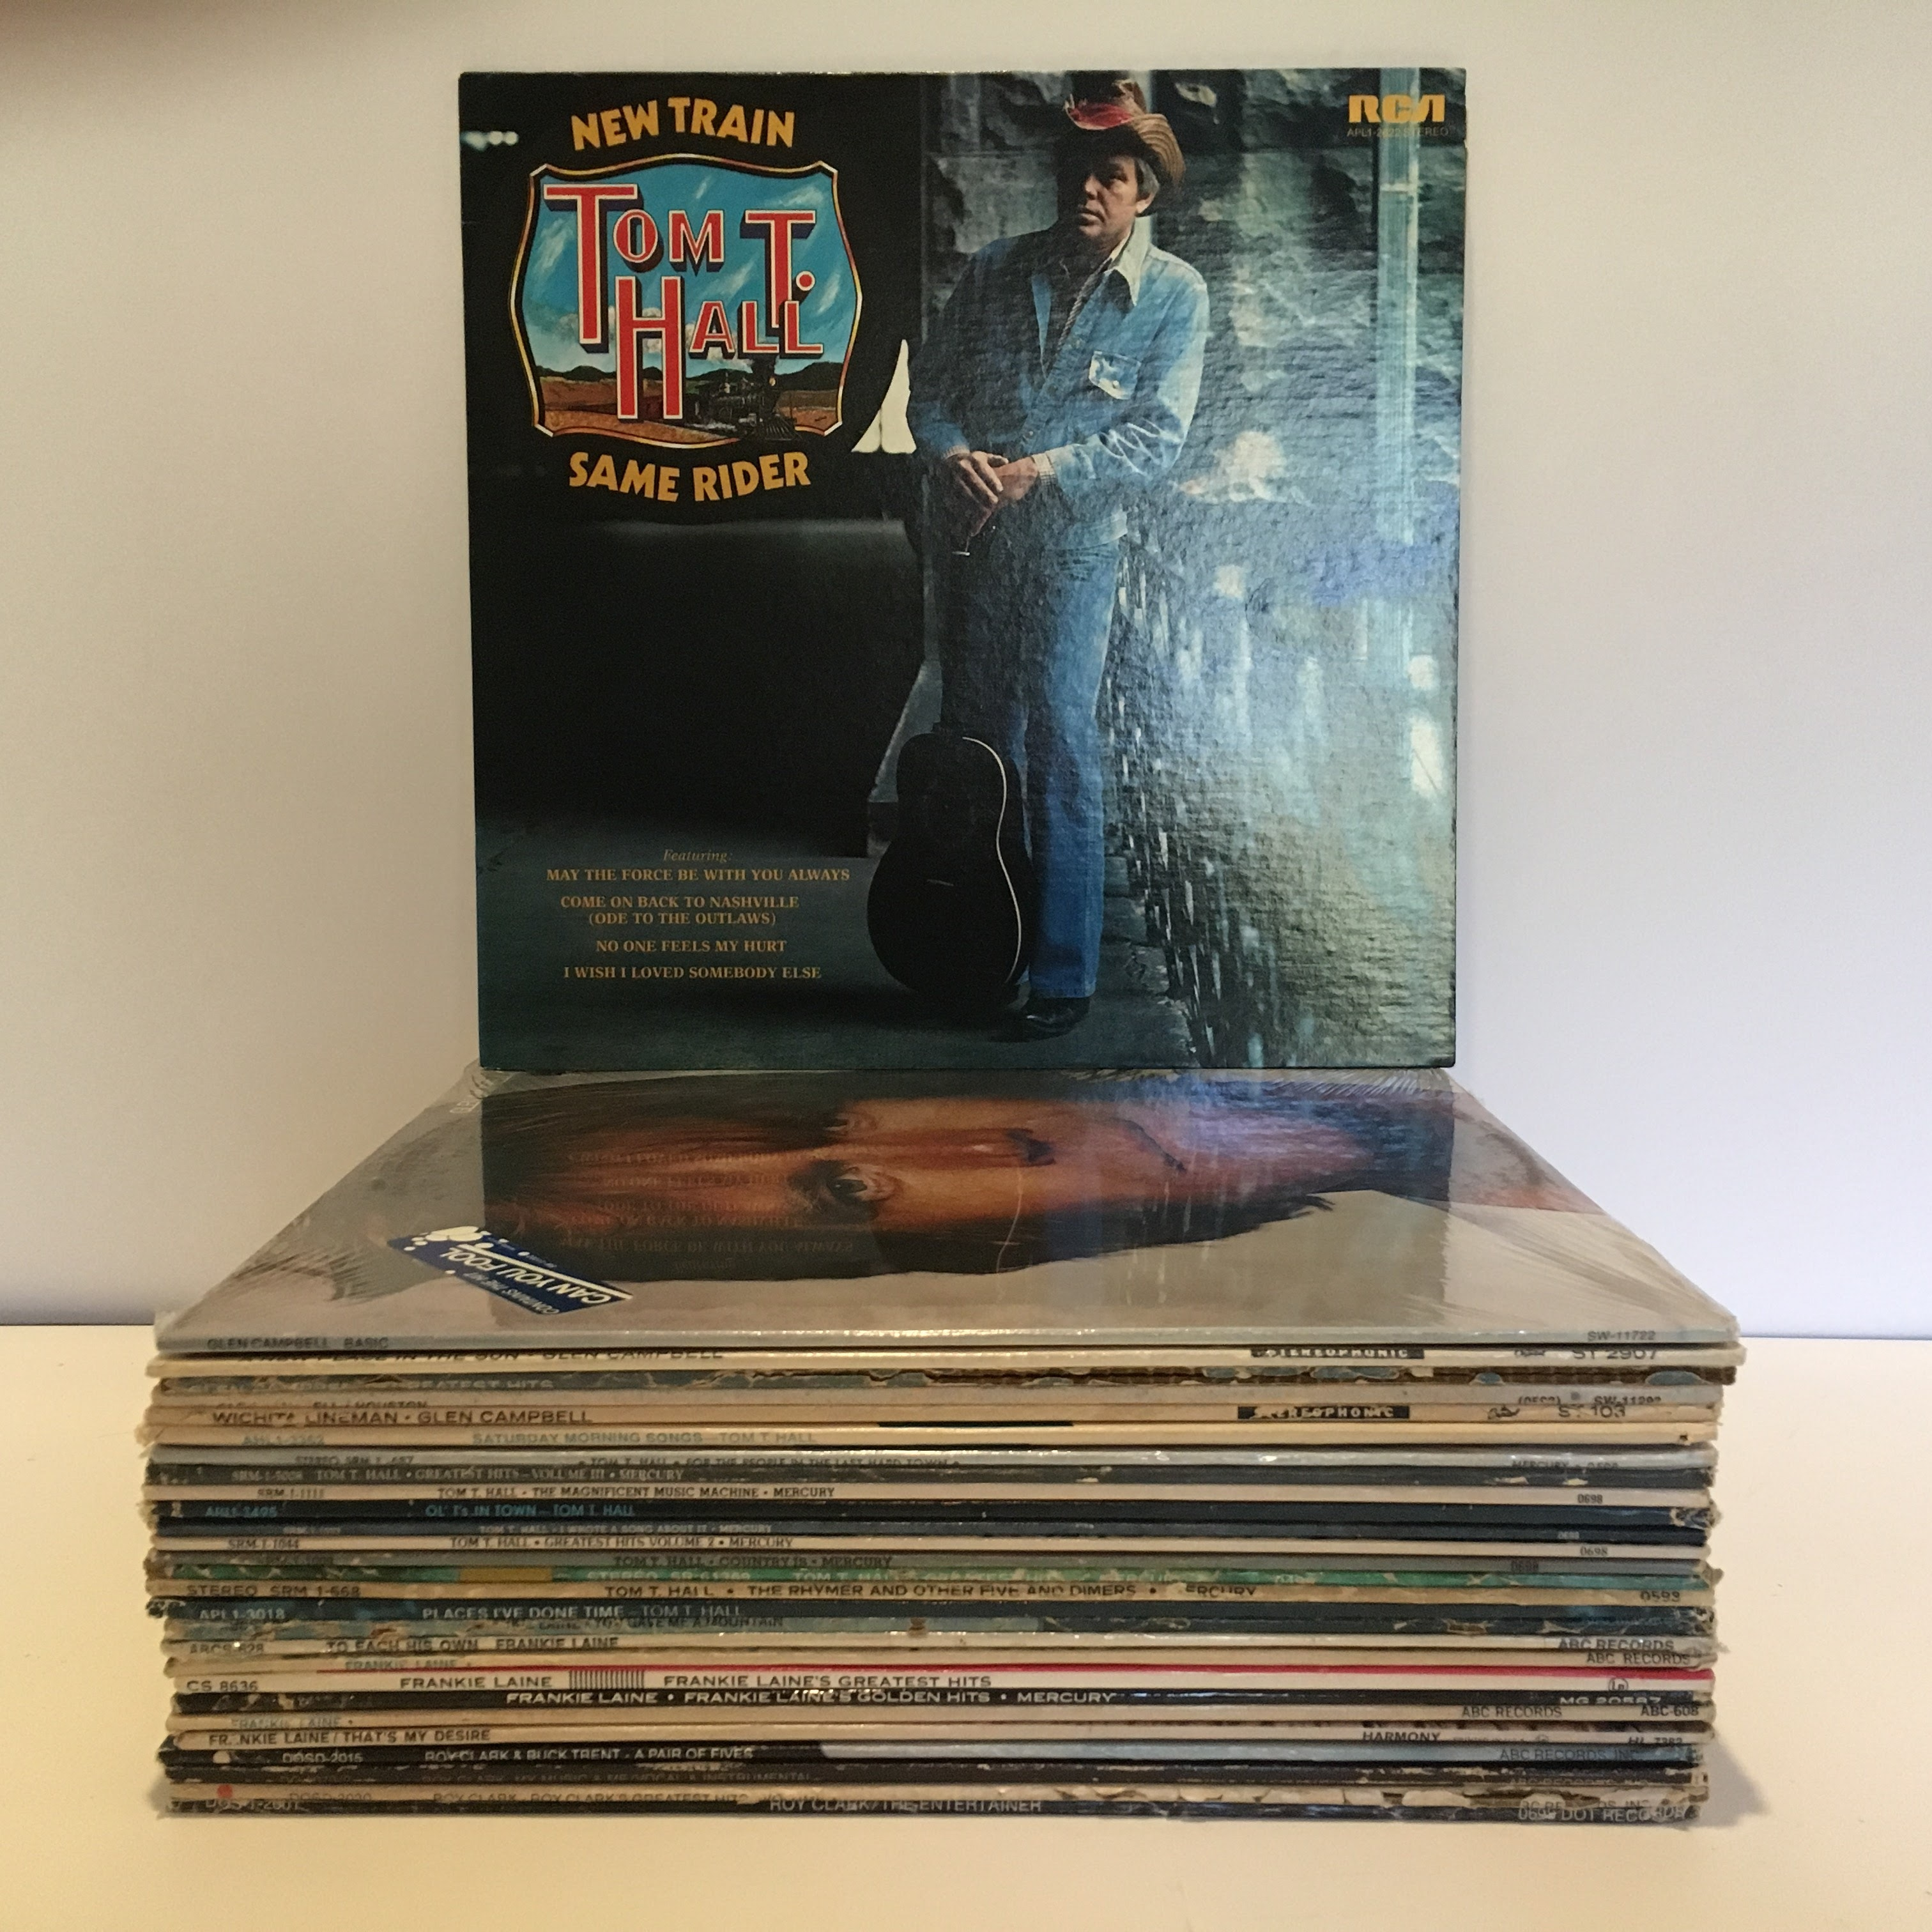 Over 25 Country LPs from Glen Campbell, Tom T. Hall, Frankie Laine and Roy Clark